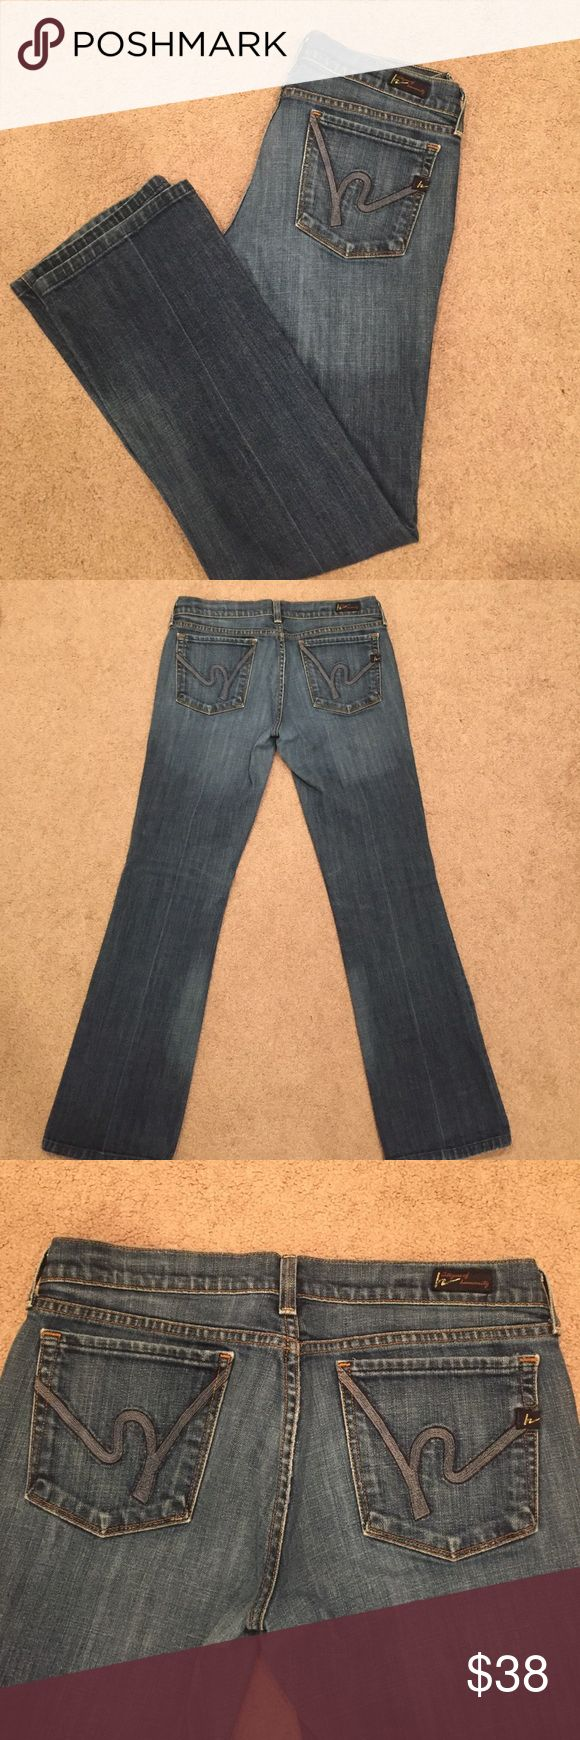 Citizens of Humanity Women's Jeans Citizens of humanity low waist boot cut. Margo #085 Great condition! One tiny speck of red polish on right thigh (shown in picture) Citizens of Humanity Jeans Boot Cut